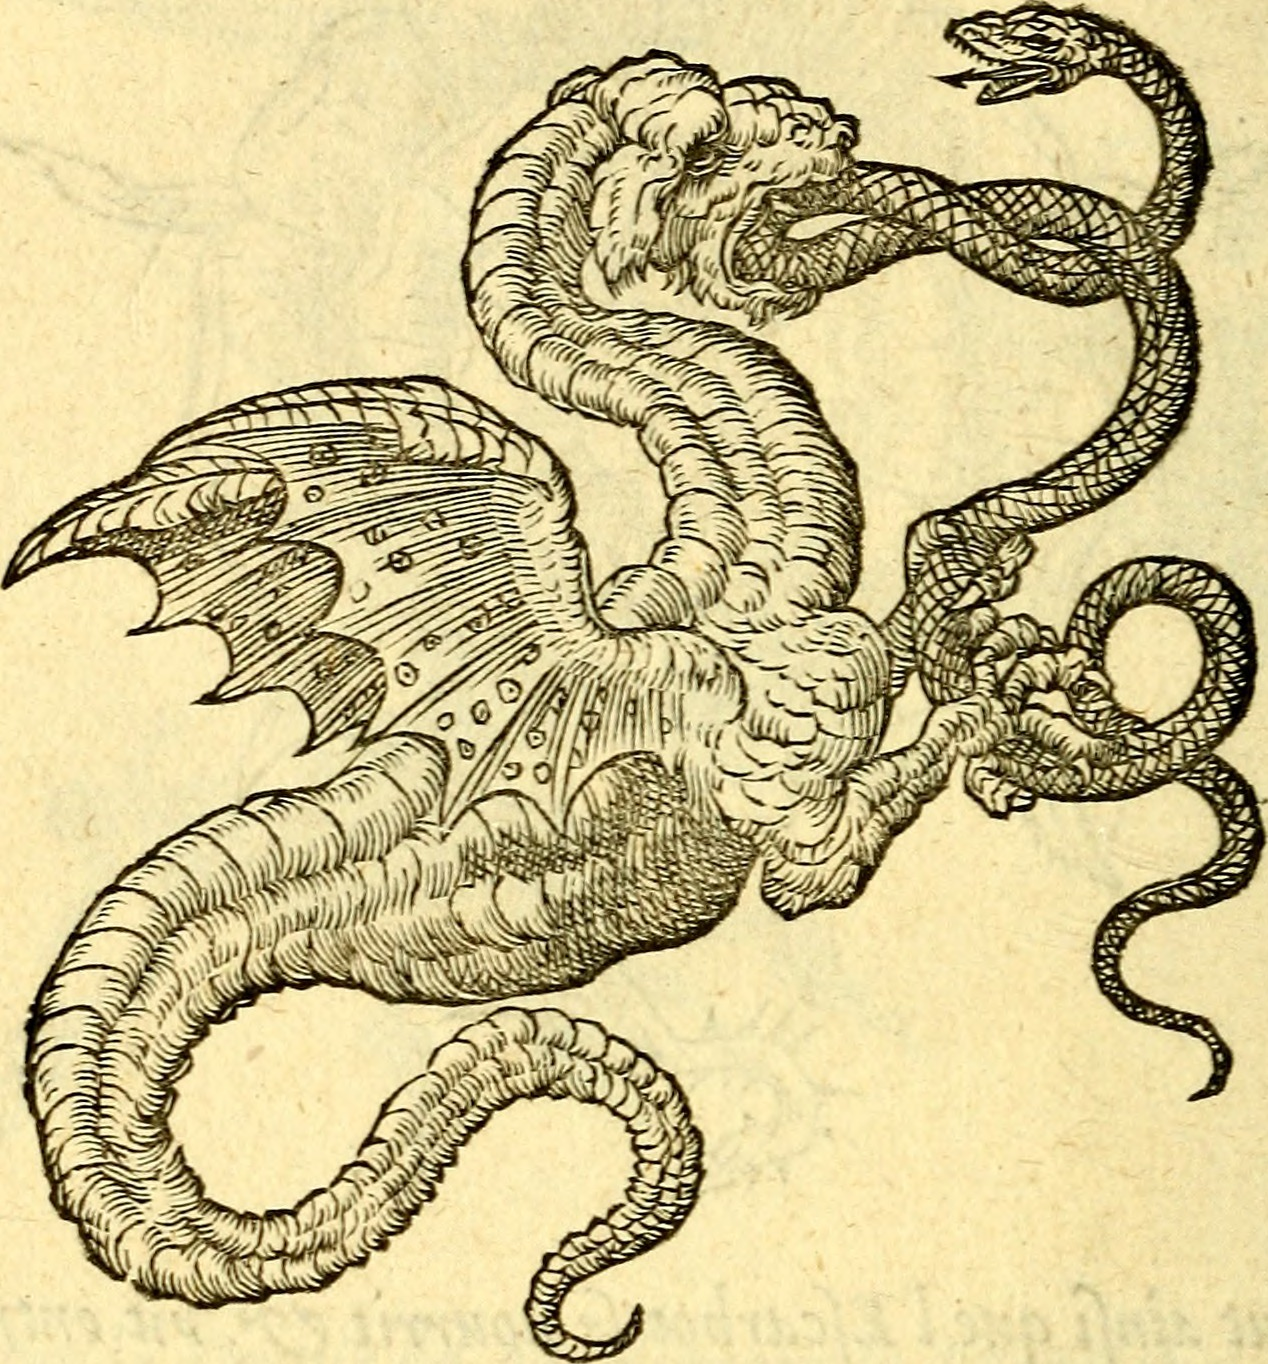 """Devises heroïqves (1557), This illustration on page 216 bears the Latin motto """"Vunius compendium, alterius stipendium"""" (The one profits, the other loses), Claude Paradin adds an explanation in French: Si un Serpent ne mangeoit l'autre, iamais ne deuien-droit Dragon. Ainsi les Riches & puissant, croissent au dommage d'autrui. (If a Serpent did not eat another, it would never become a real Dragon. Thus do the Rich and powerful grow by harming  another.)"""